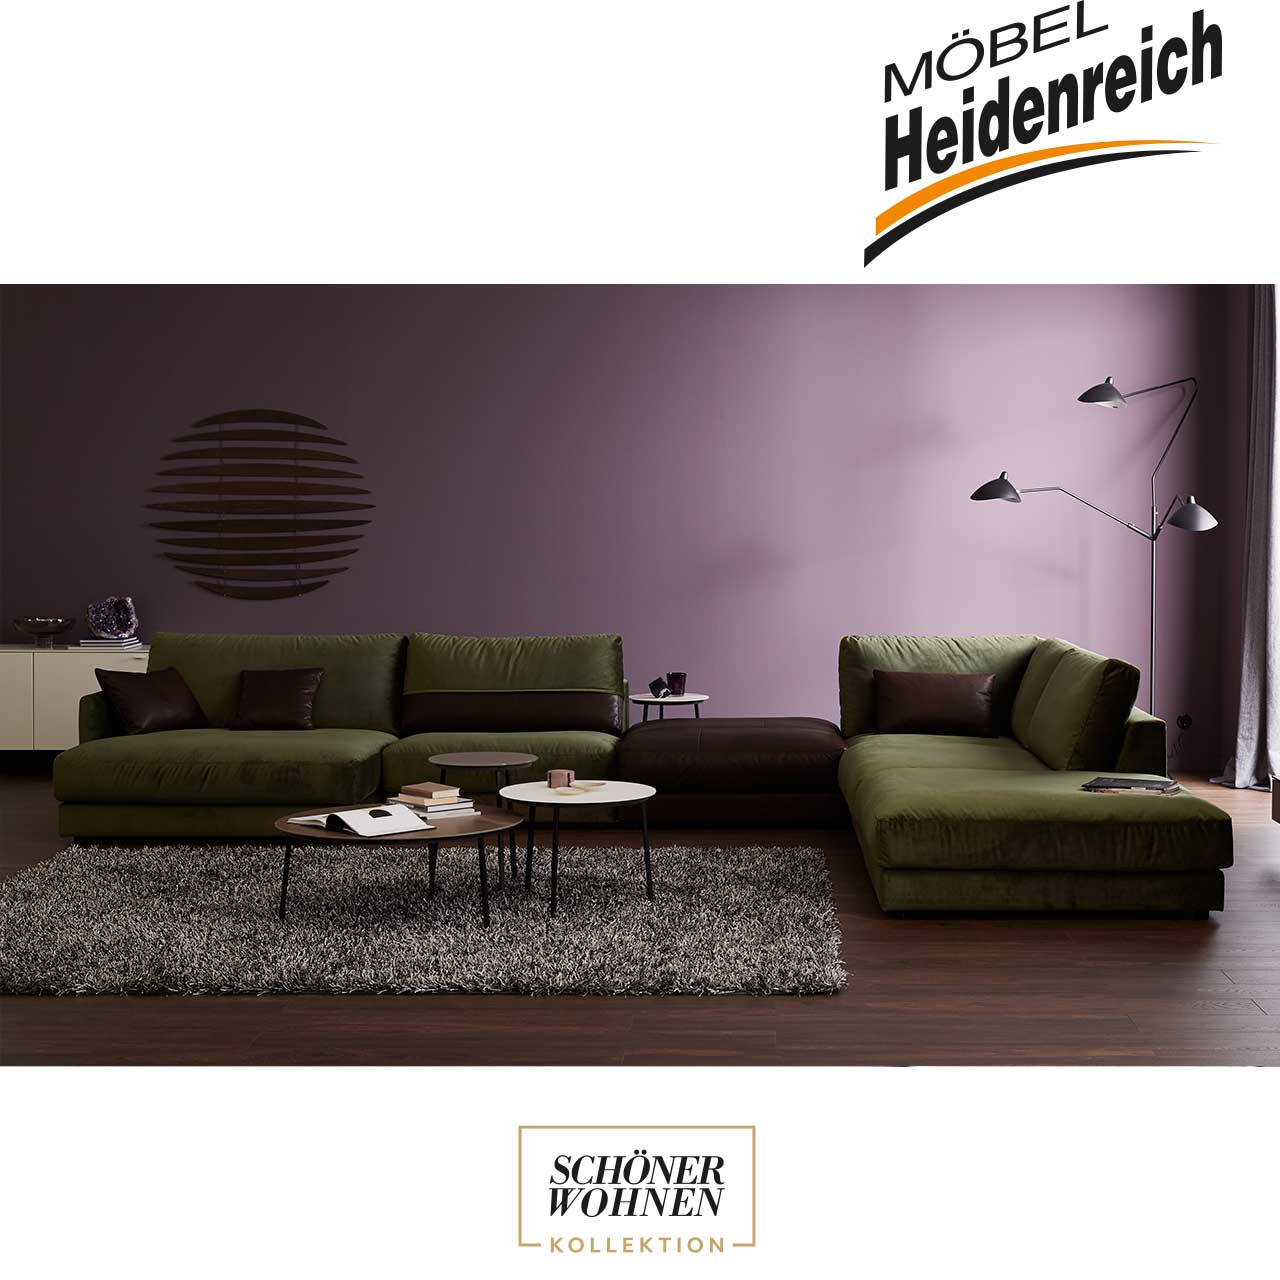 sch ner wohnen ecksofa gabo m bel heidenreich. Black Bedroom Furniture Sets. Home Design Ideas